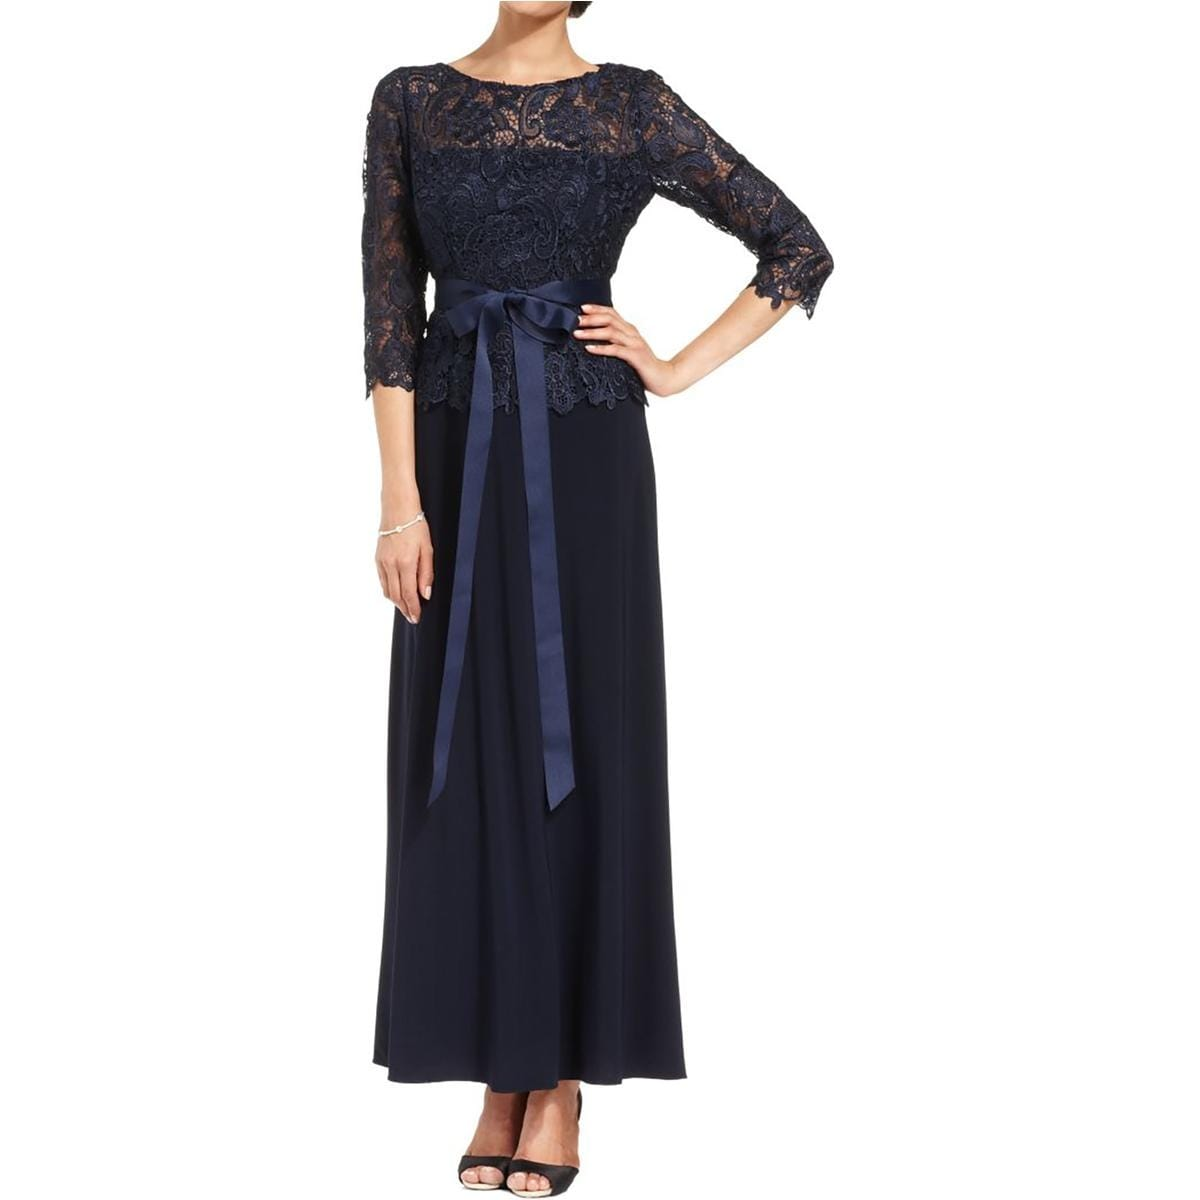 Patra Womens Mother Of The Bride Dress Lace 34 Sleeves Free